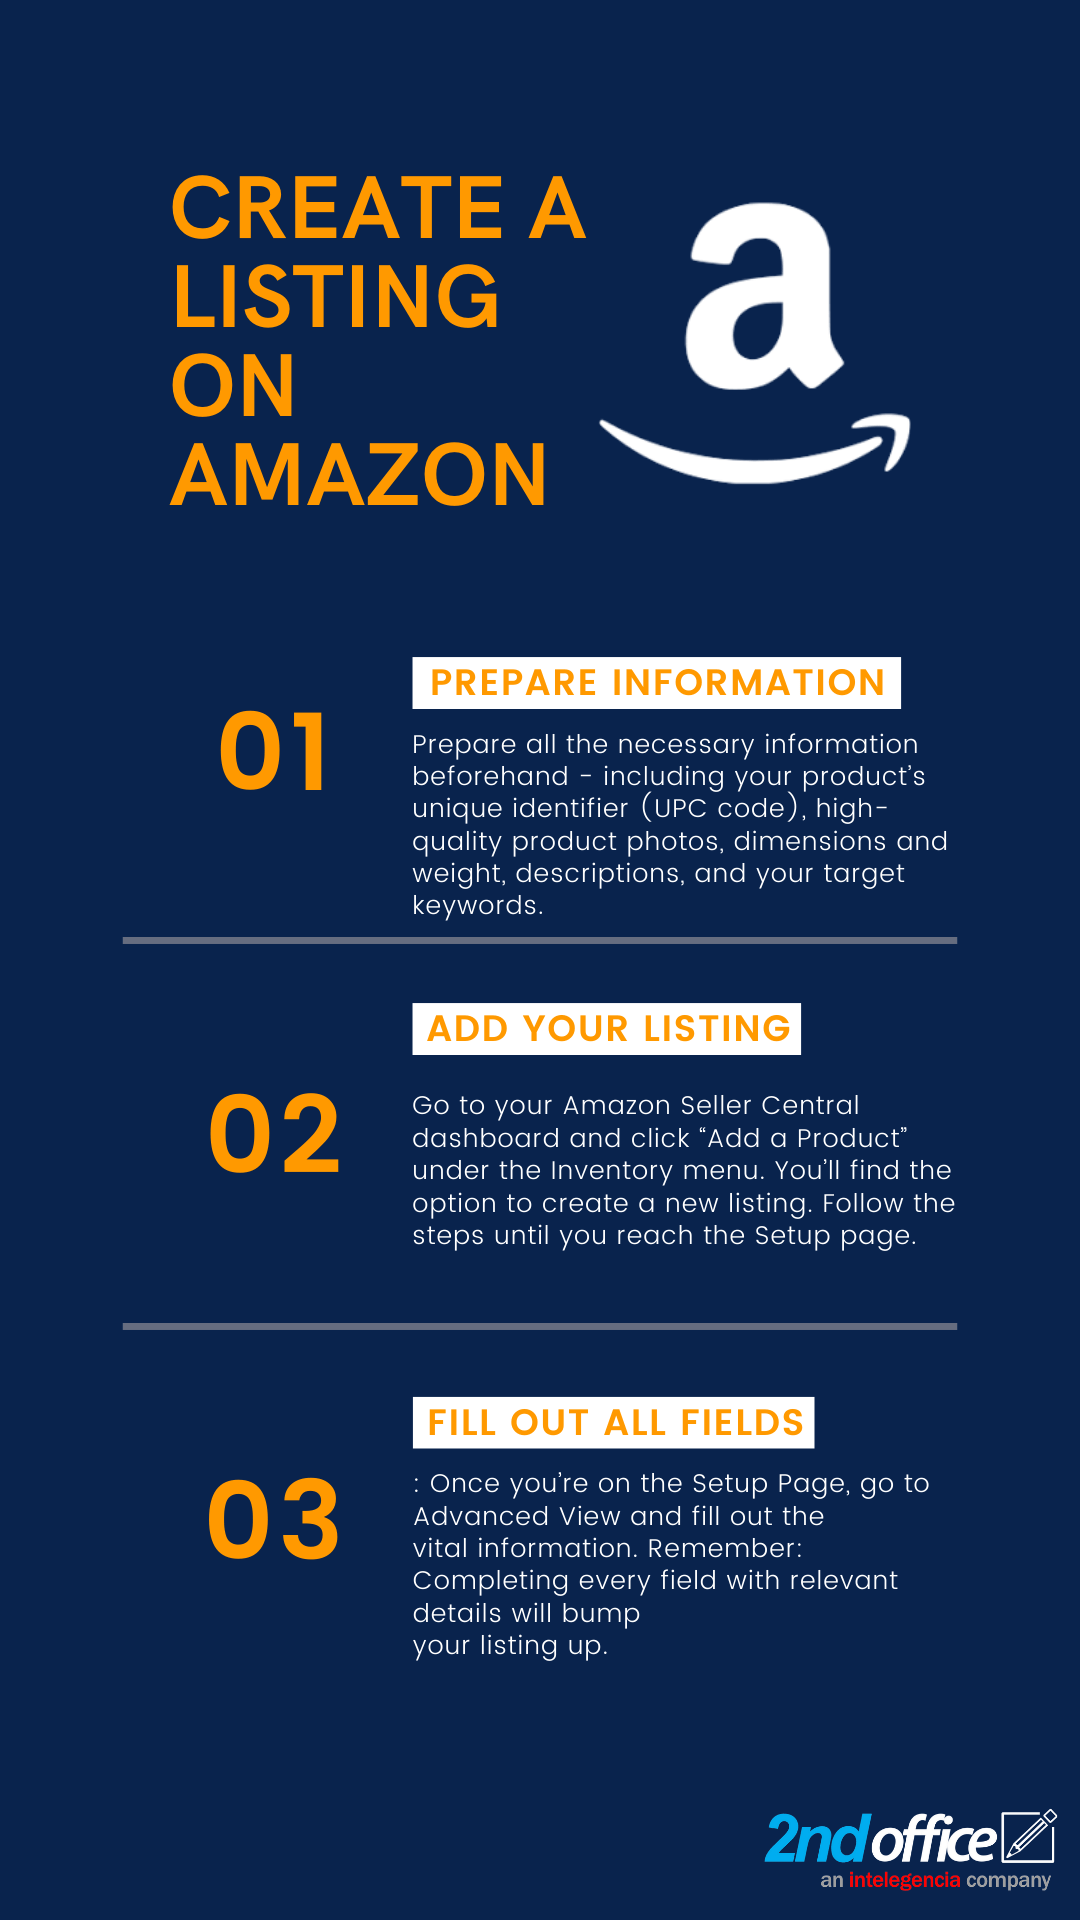 How to create a listing on Amazon